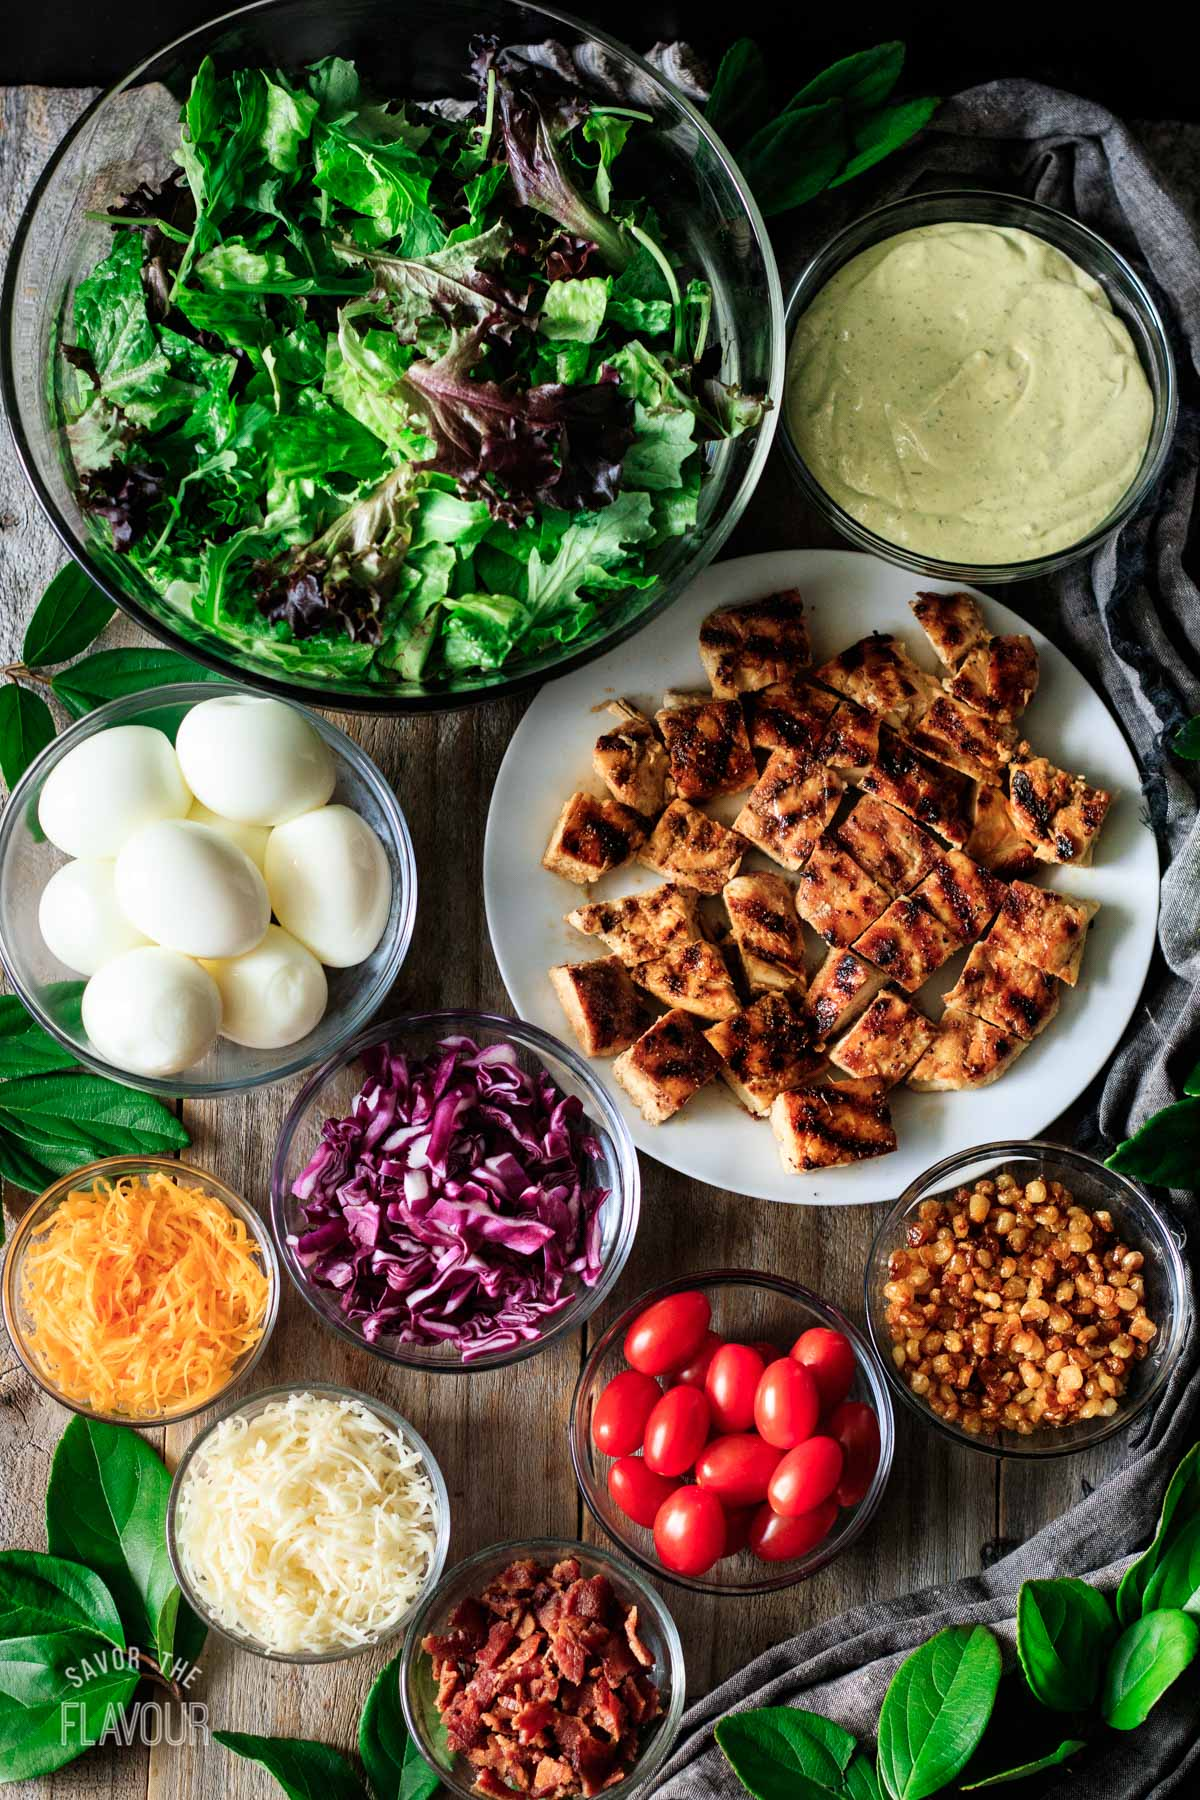 bowls of ingredients for copycat Chick-fil-A Cobb salad